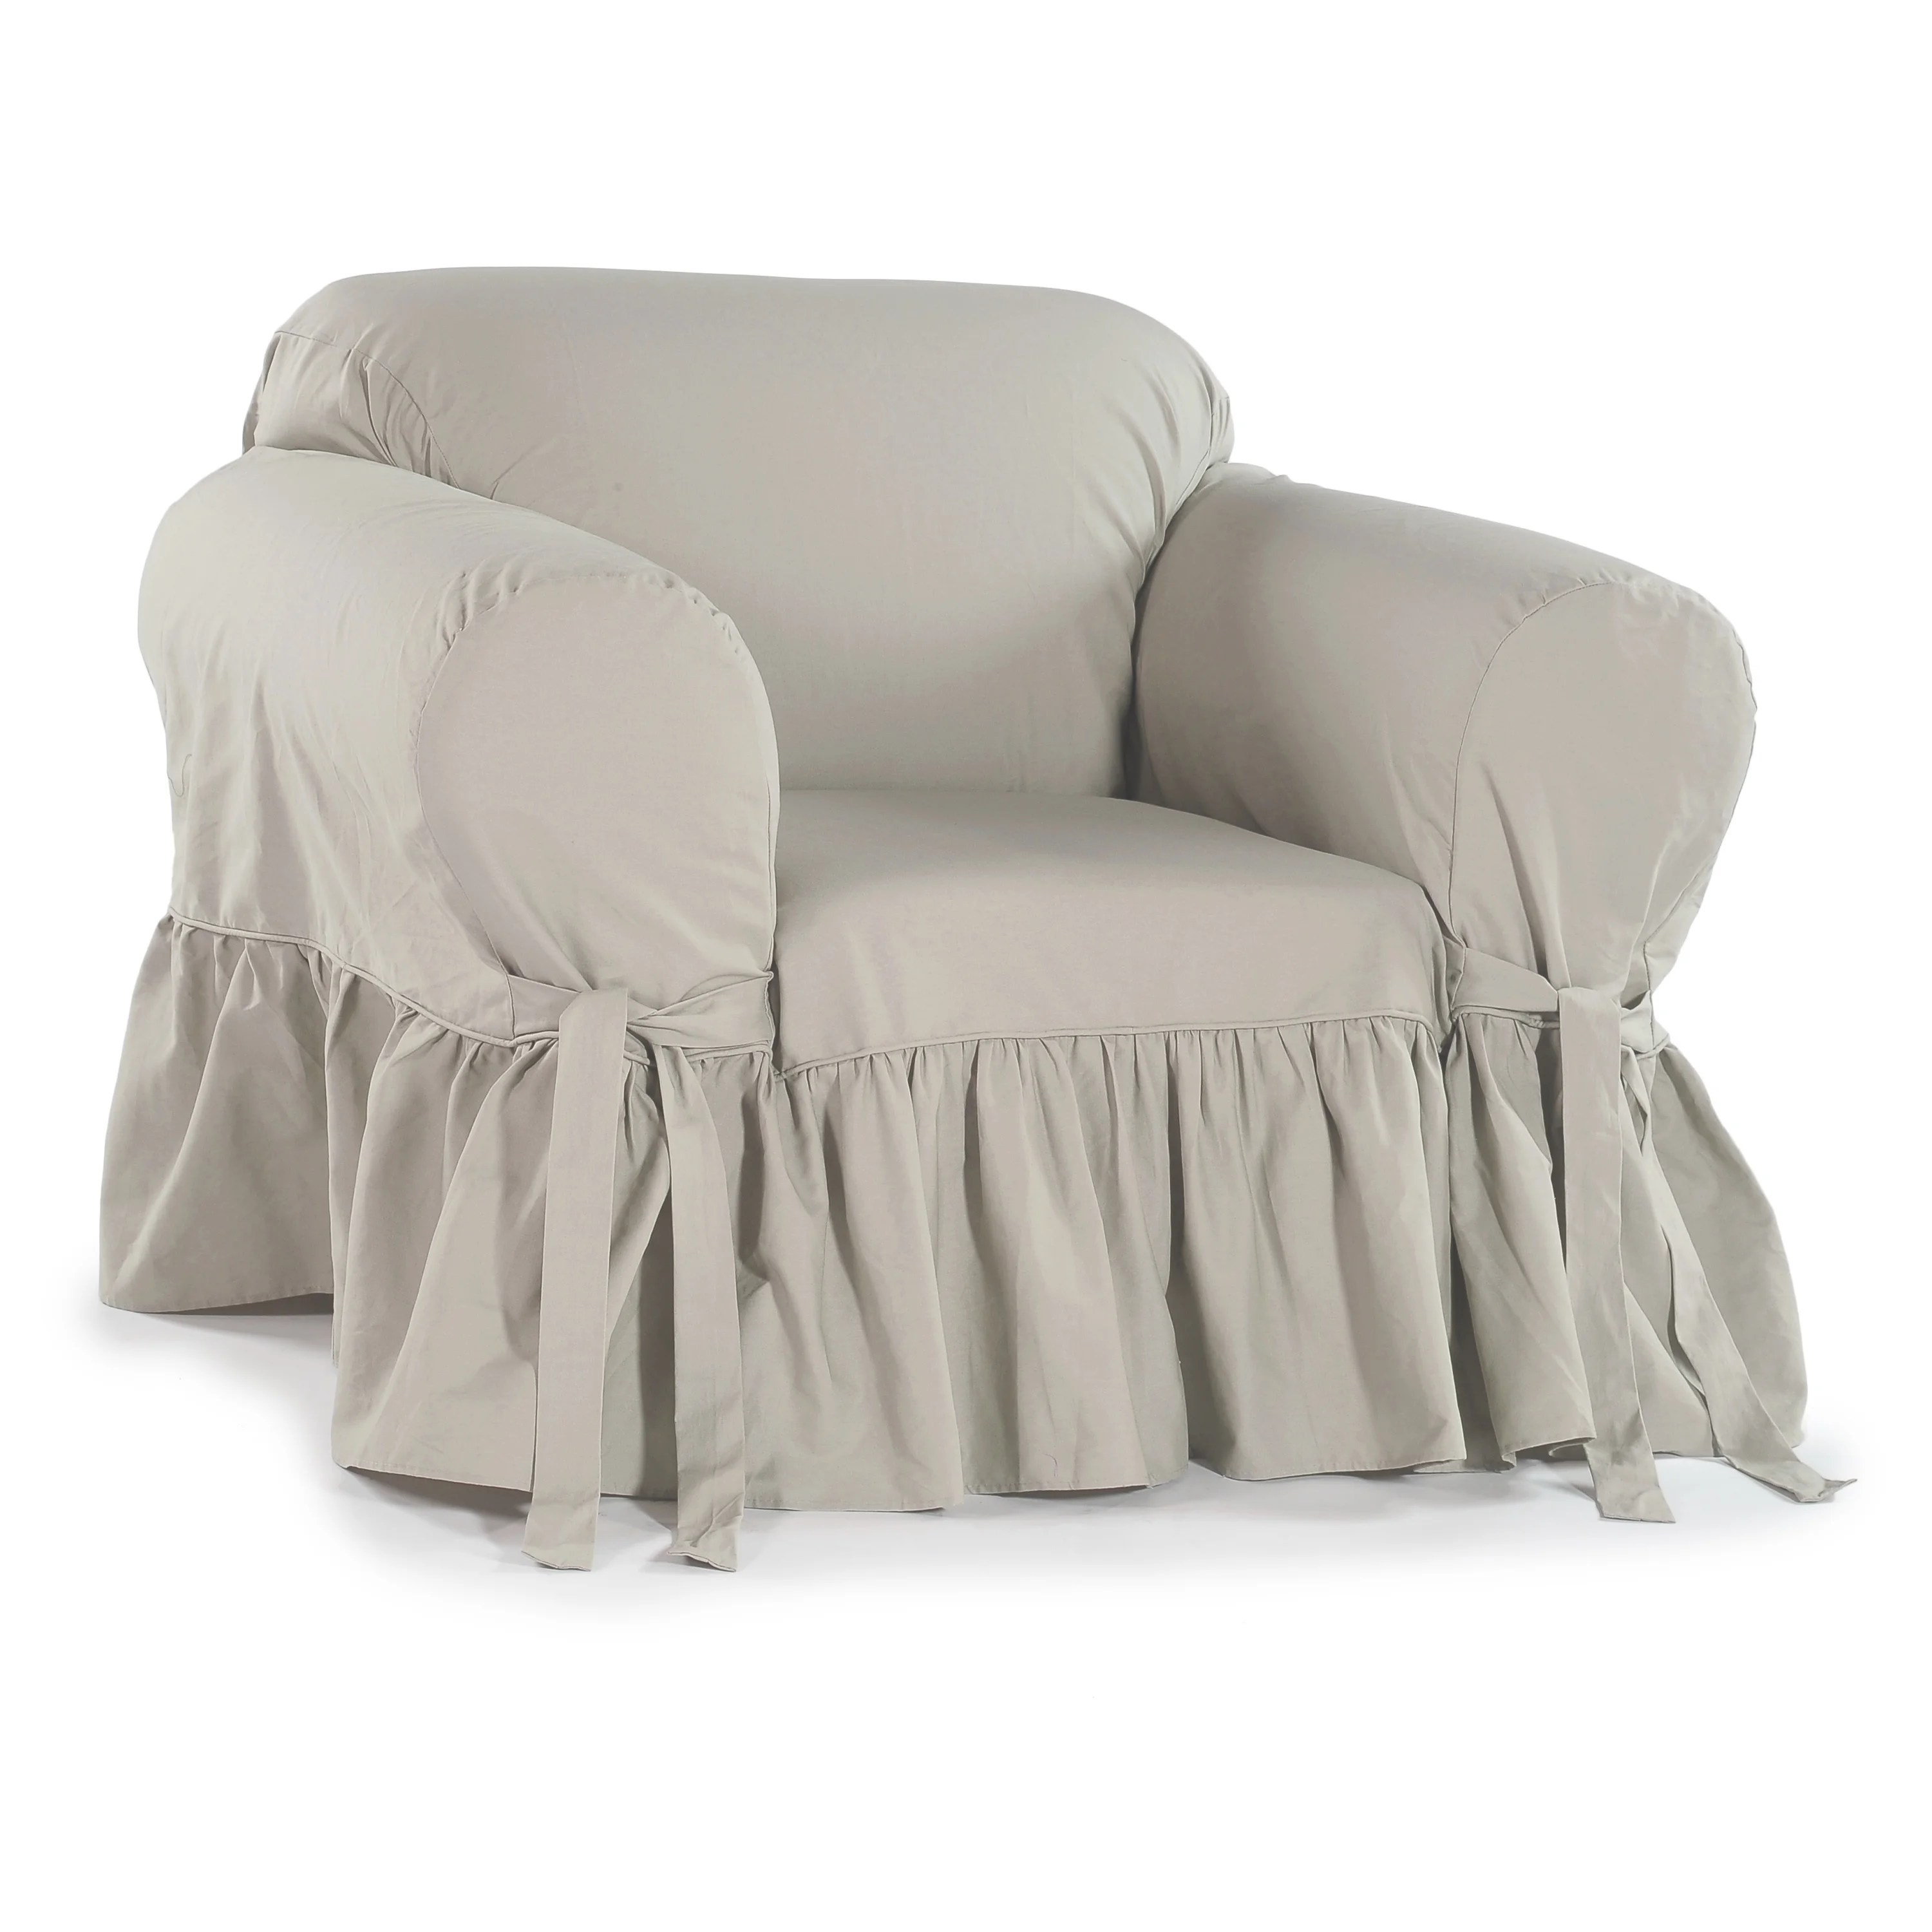 chair covers overstock office warmer ruffled cotton arm slipcover shopping